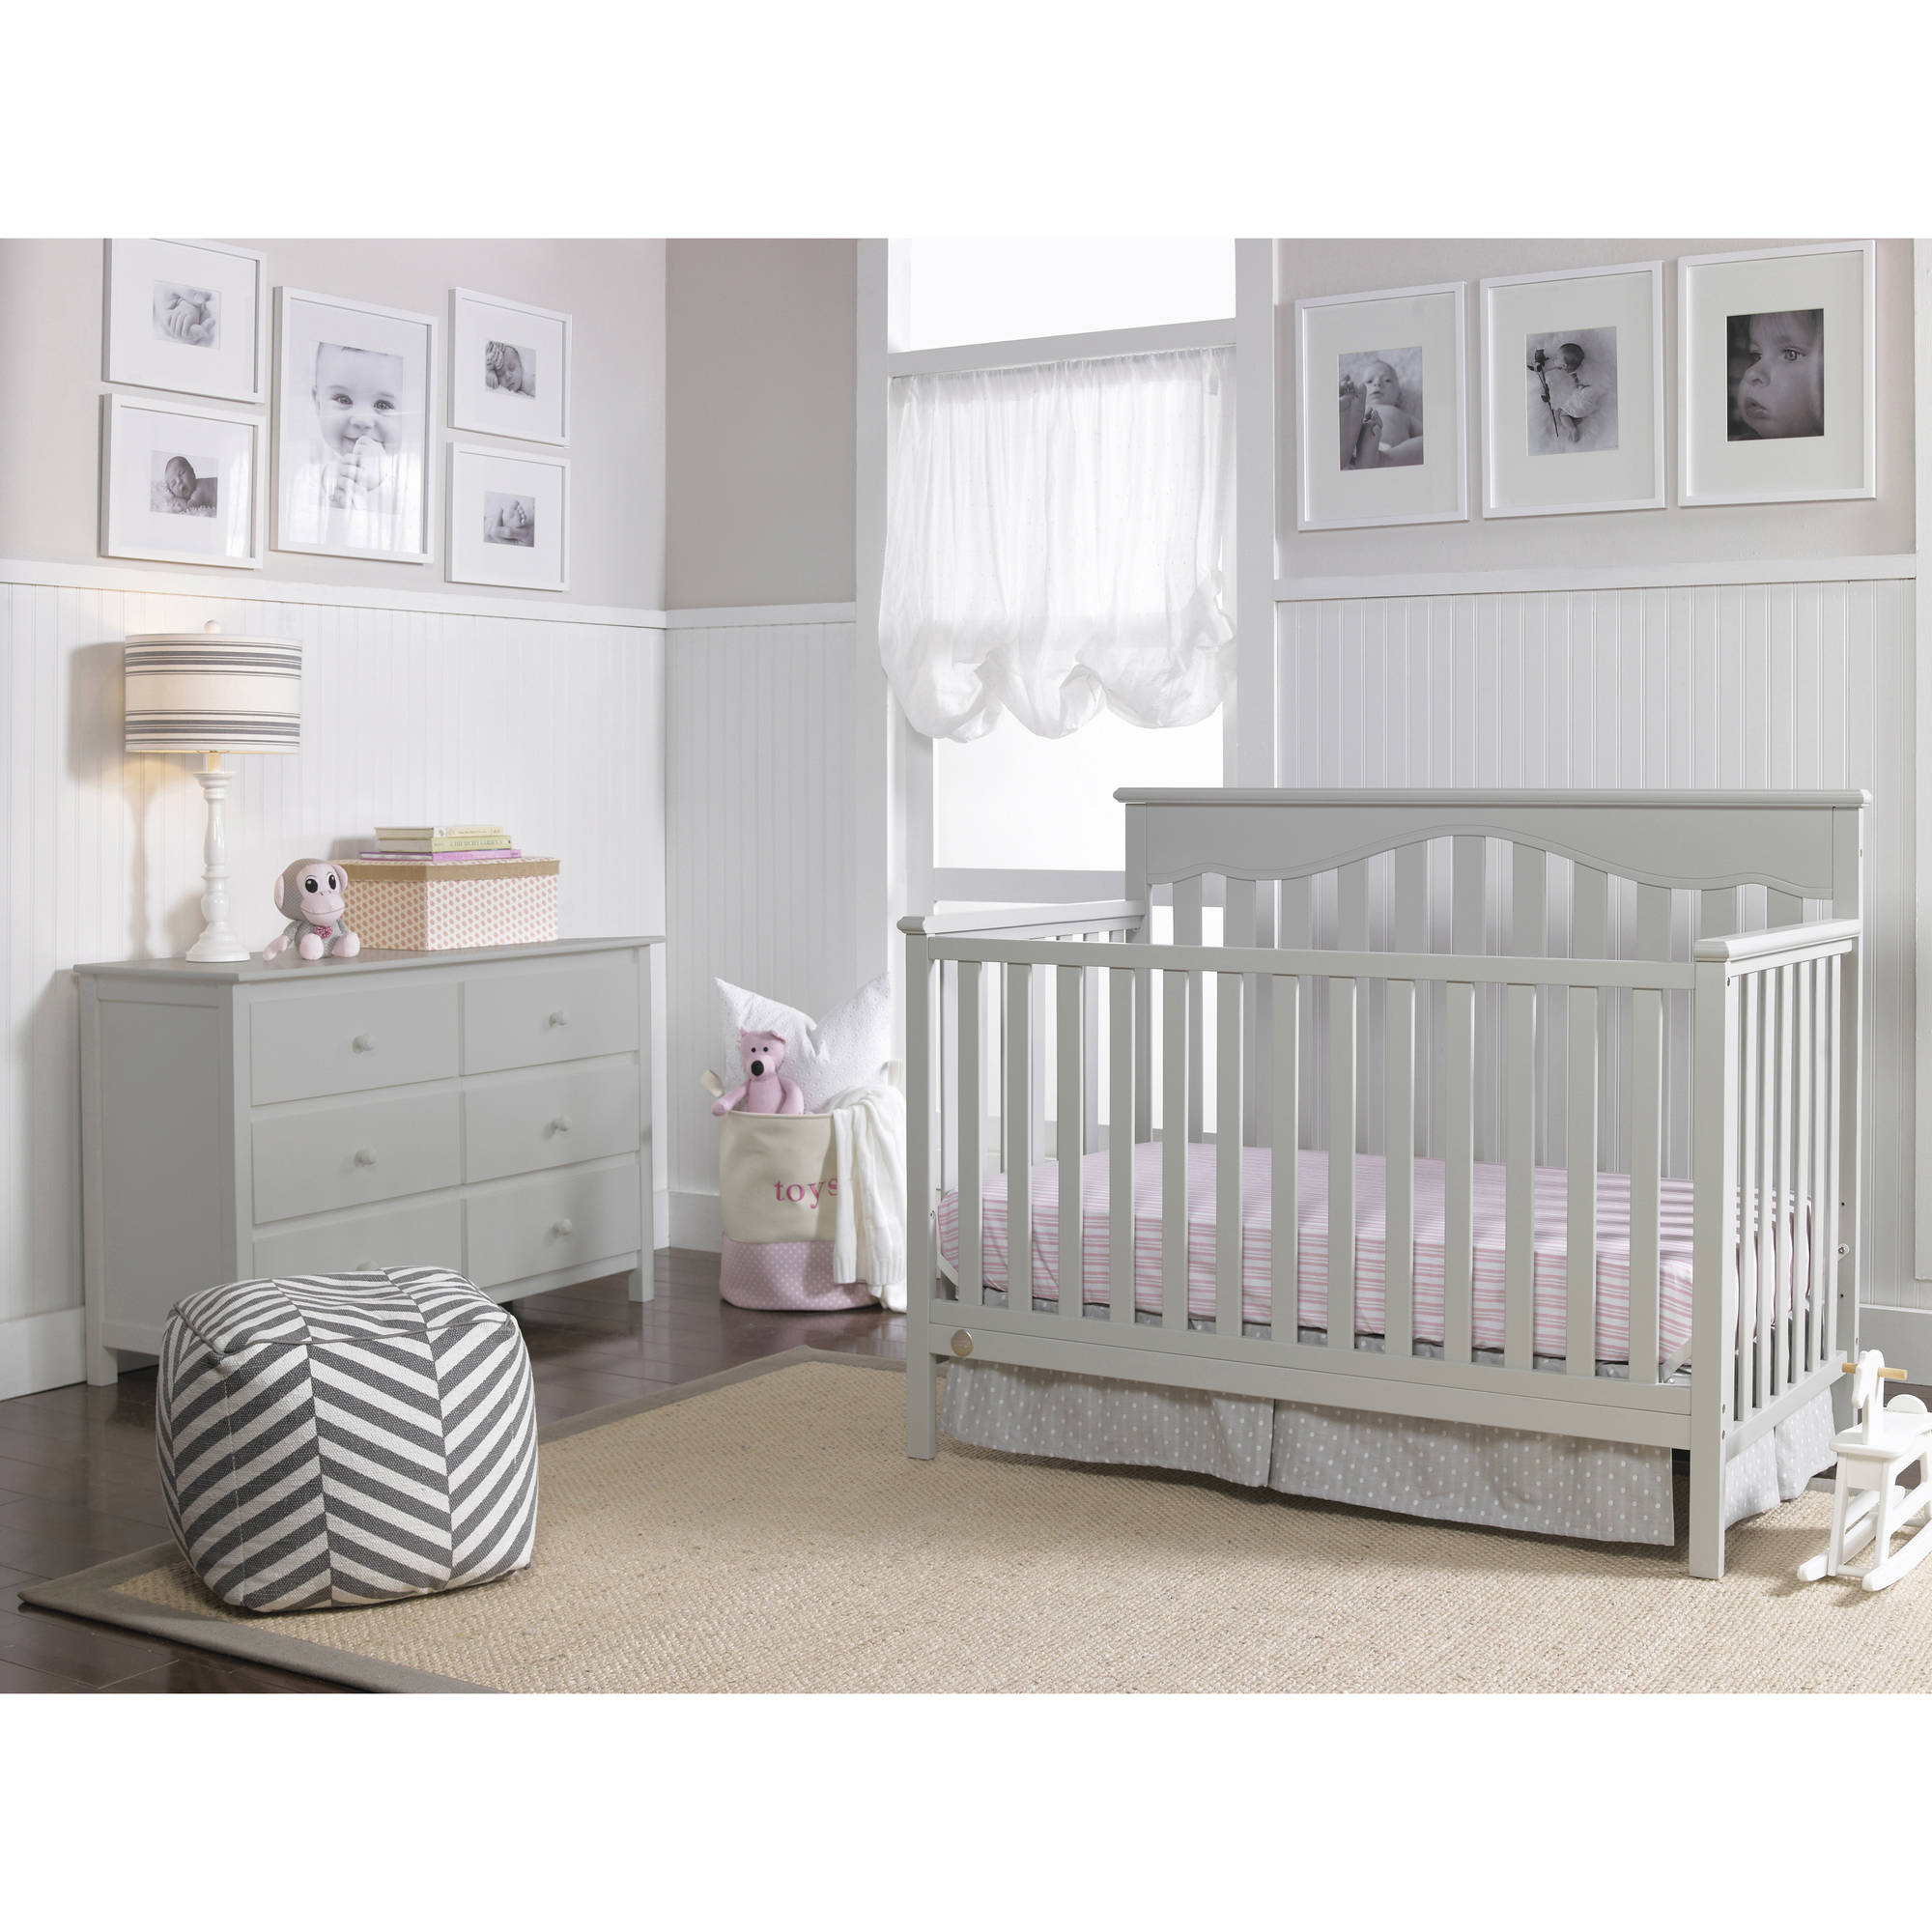 Awesome Fisher Price Ayden 4 In 1 Fixed Side Convertible Crib, (Choose Your Finish)    Walmart.com